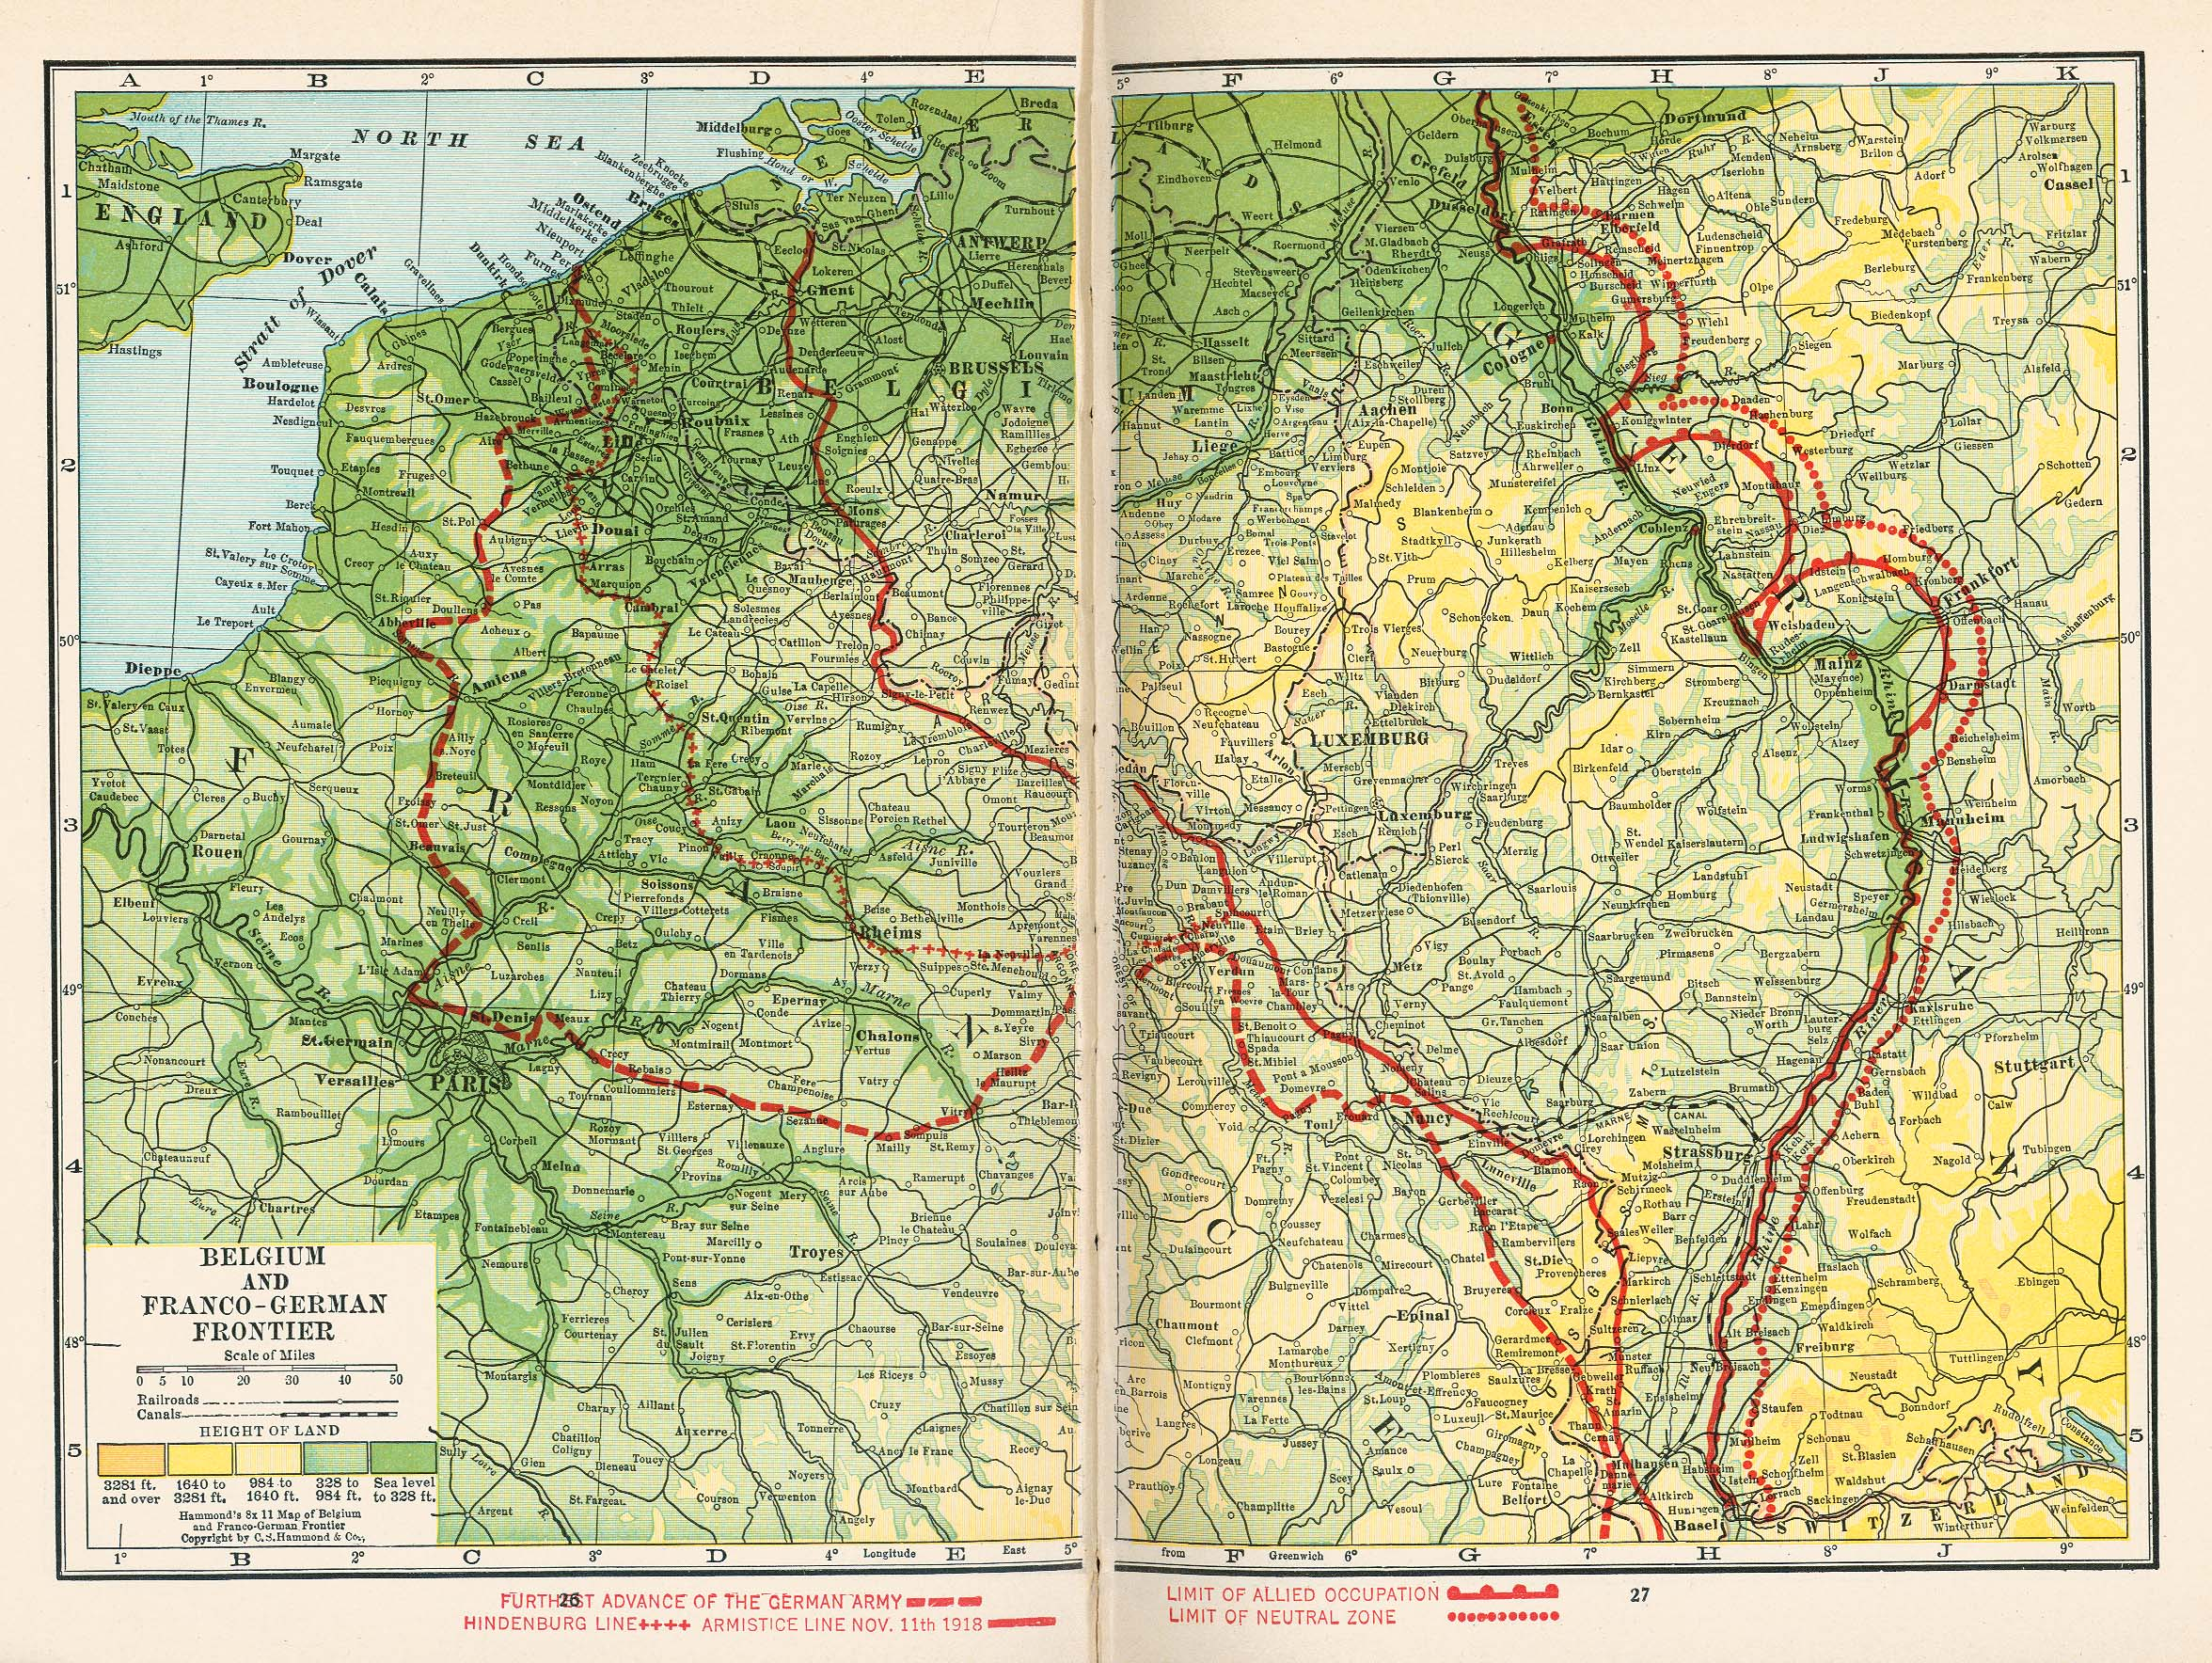 belgium and franco german frontier